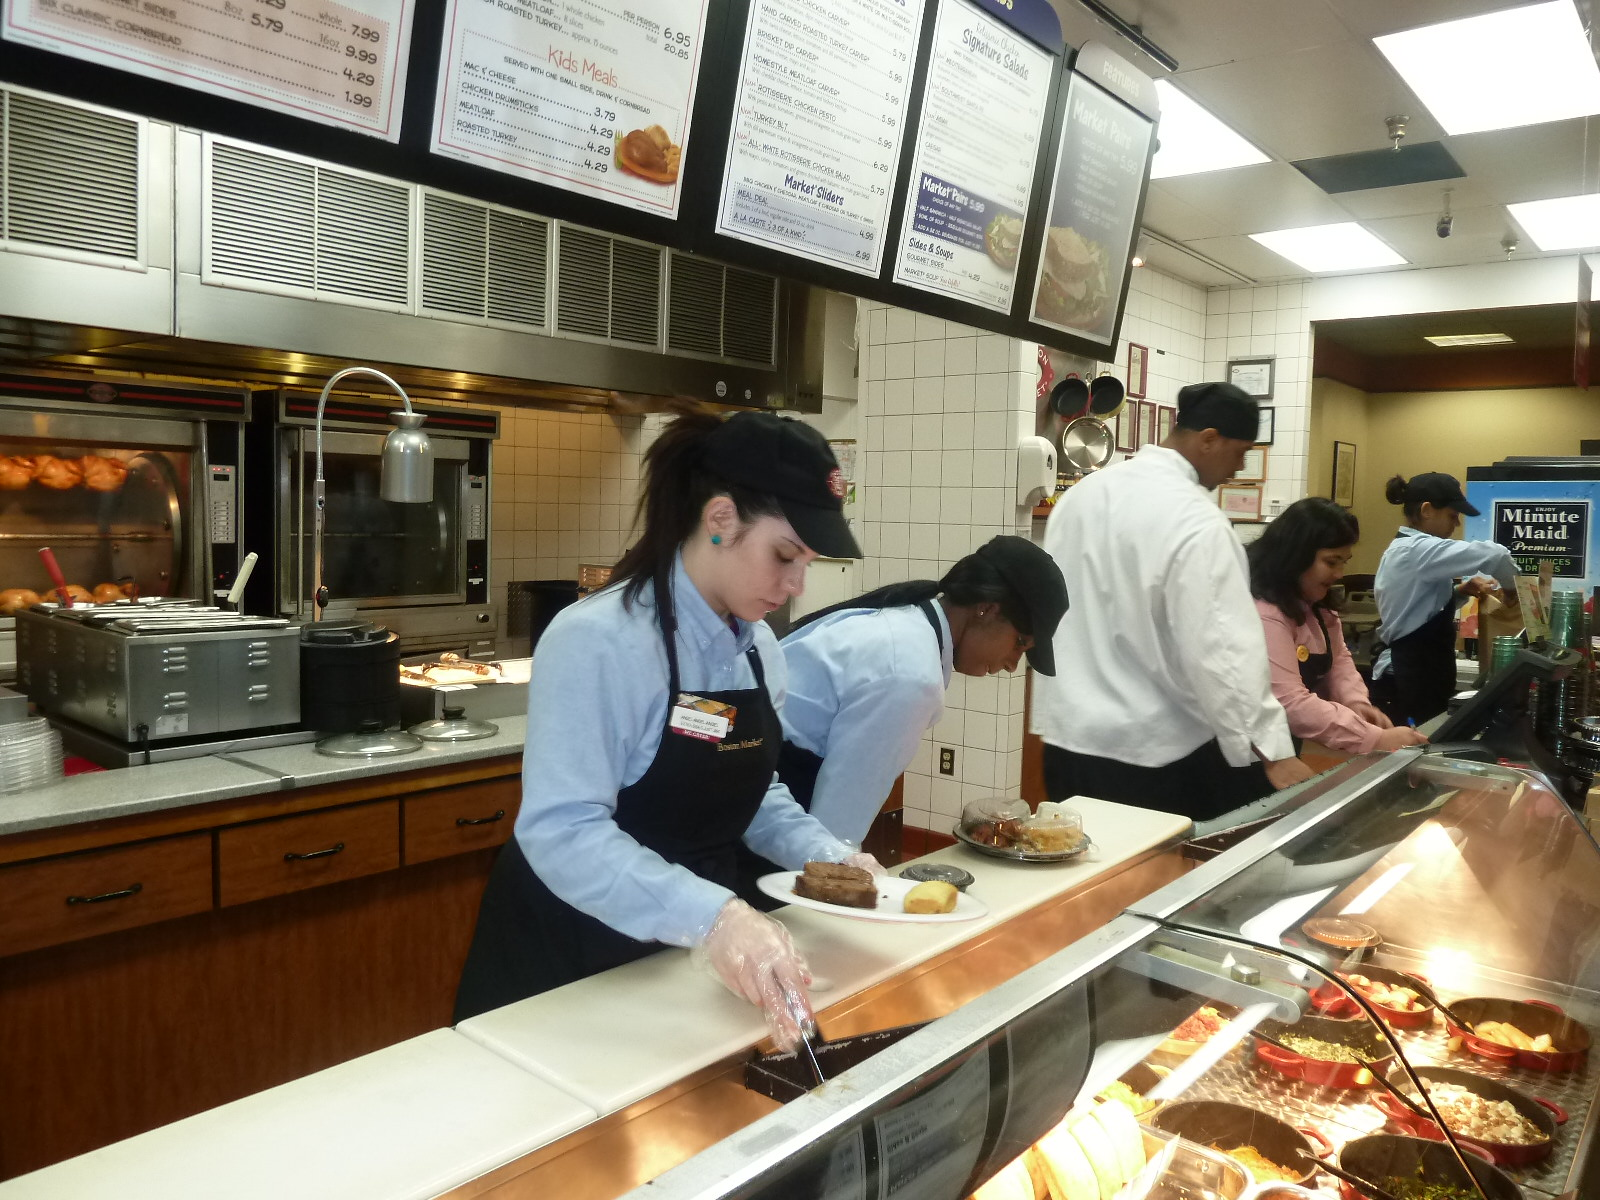 One Of The First Changes That I Noticed At Boston Market Was Way Staff Were Attired Everyone Looked Like They Had Just Walked Off